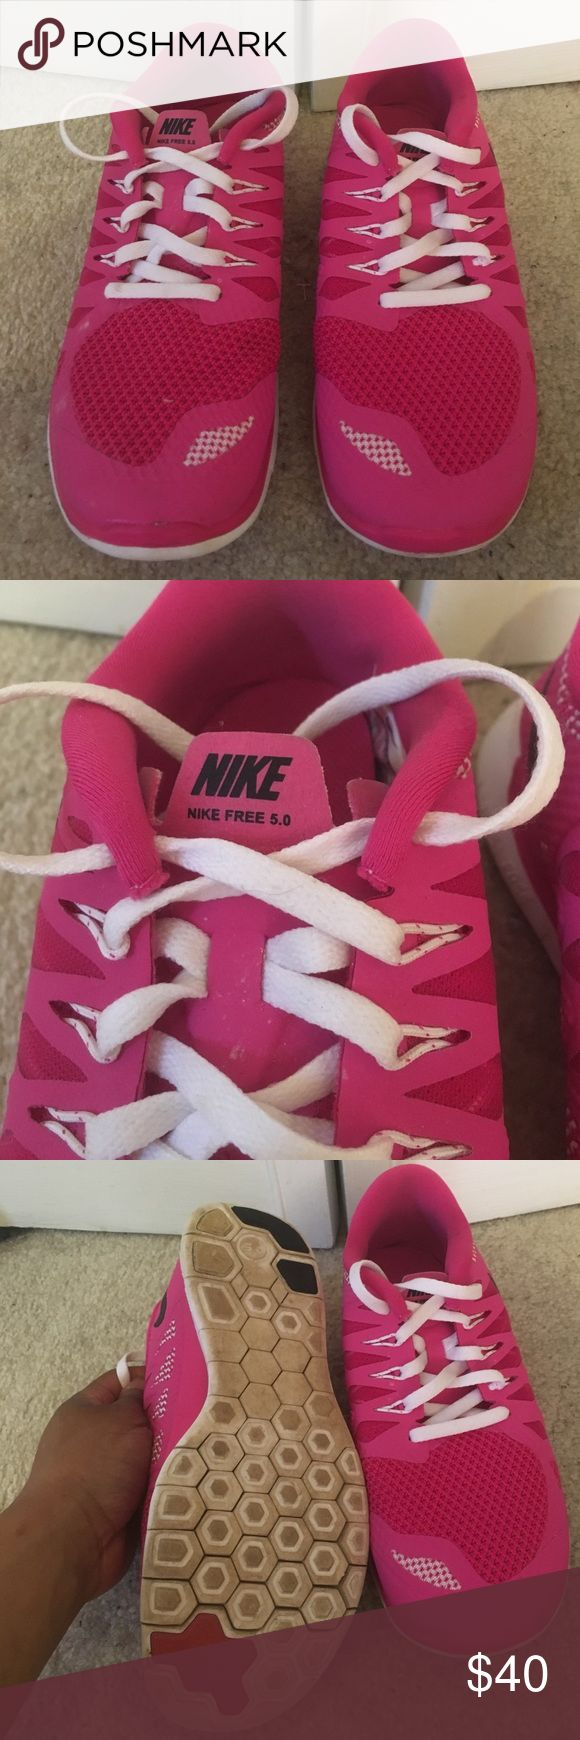 Kids Nike Free 5.0 shoes Nike shoes for kids! Great pink color!!! Have been worn as shown in pictures Nike Shoes Sneakers